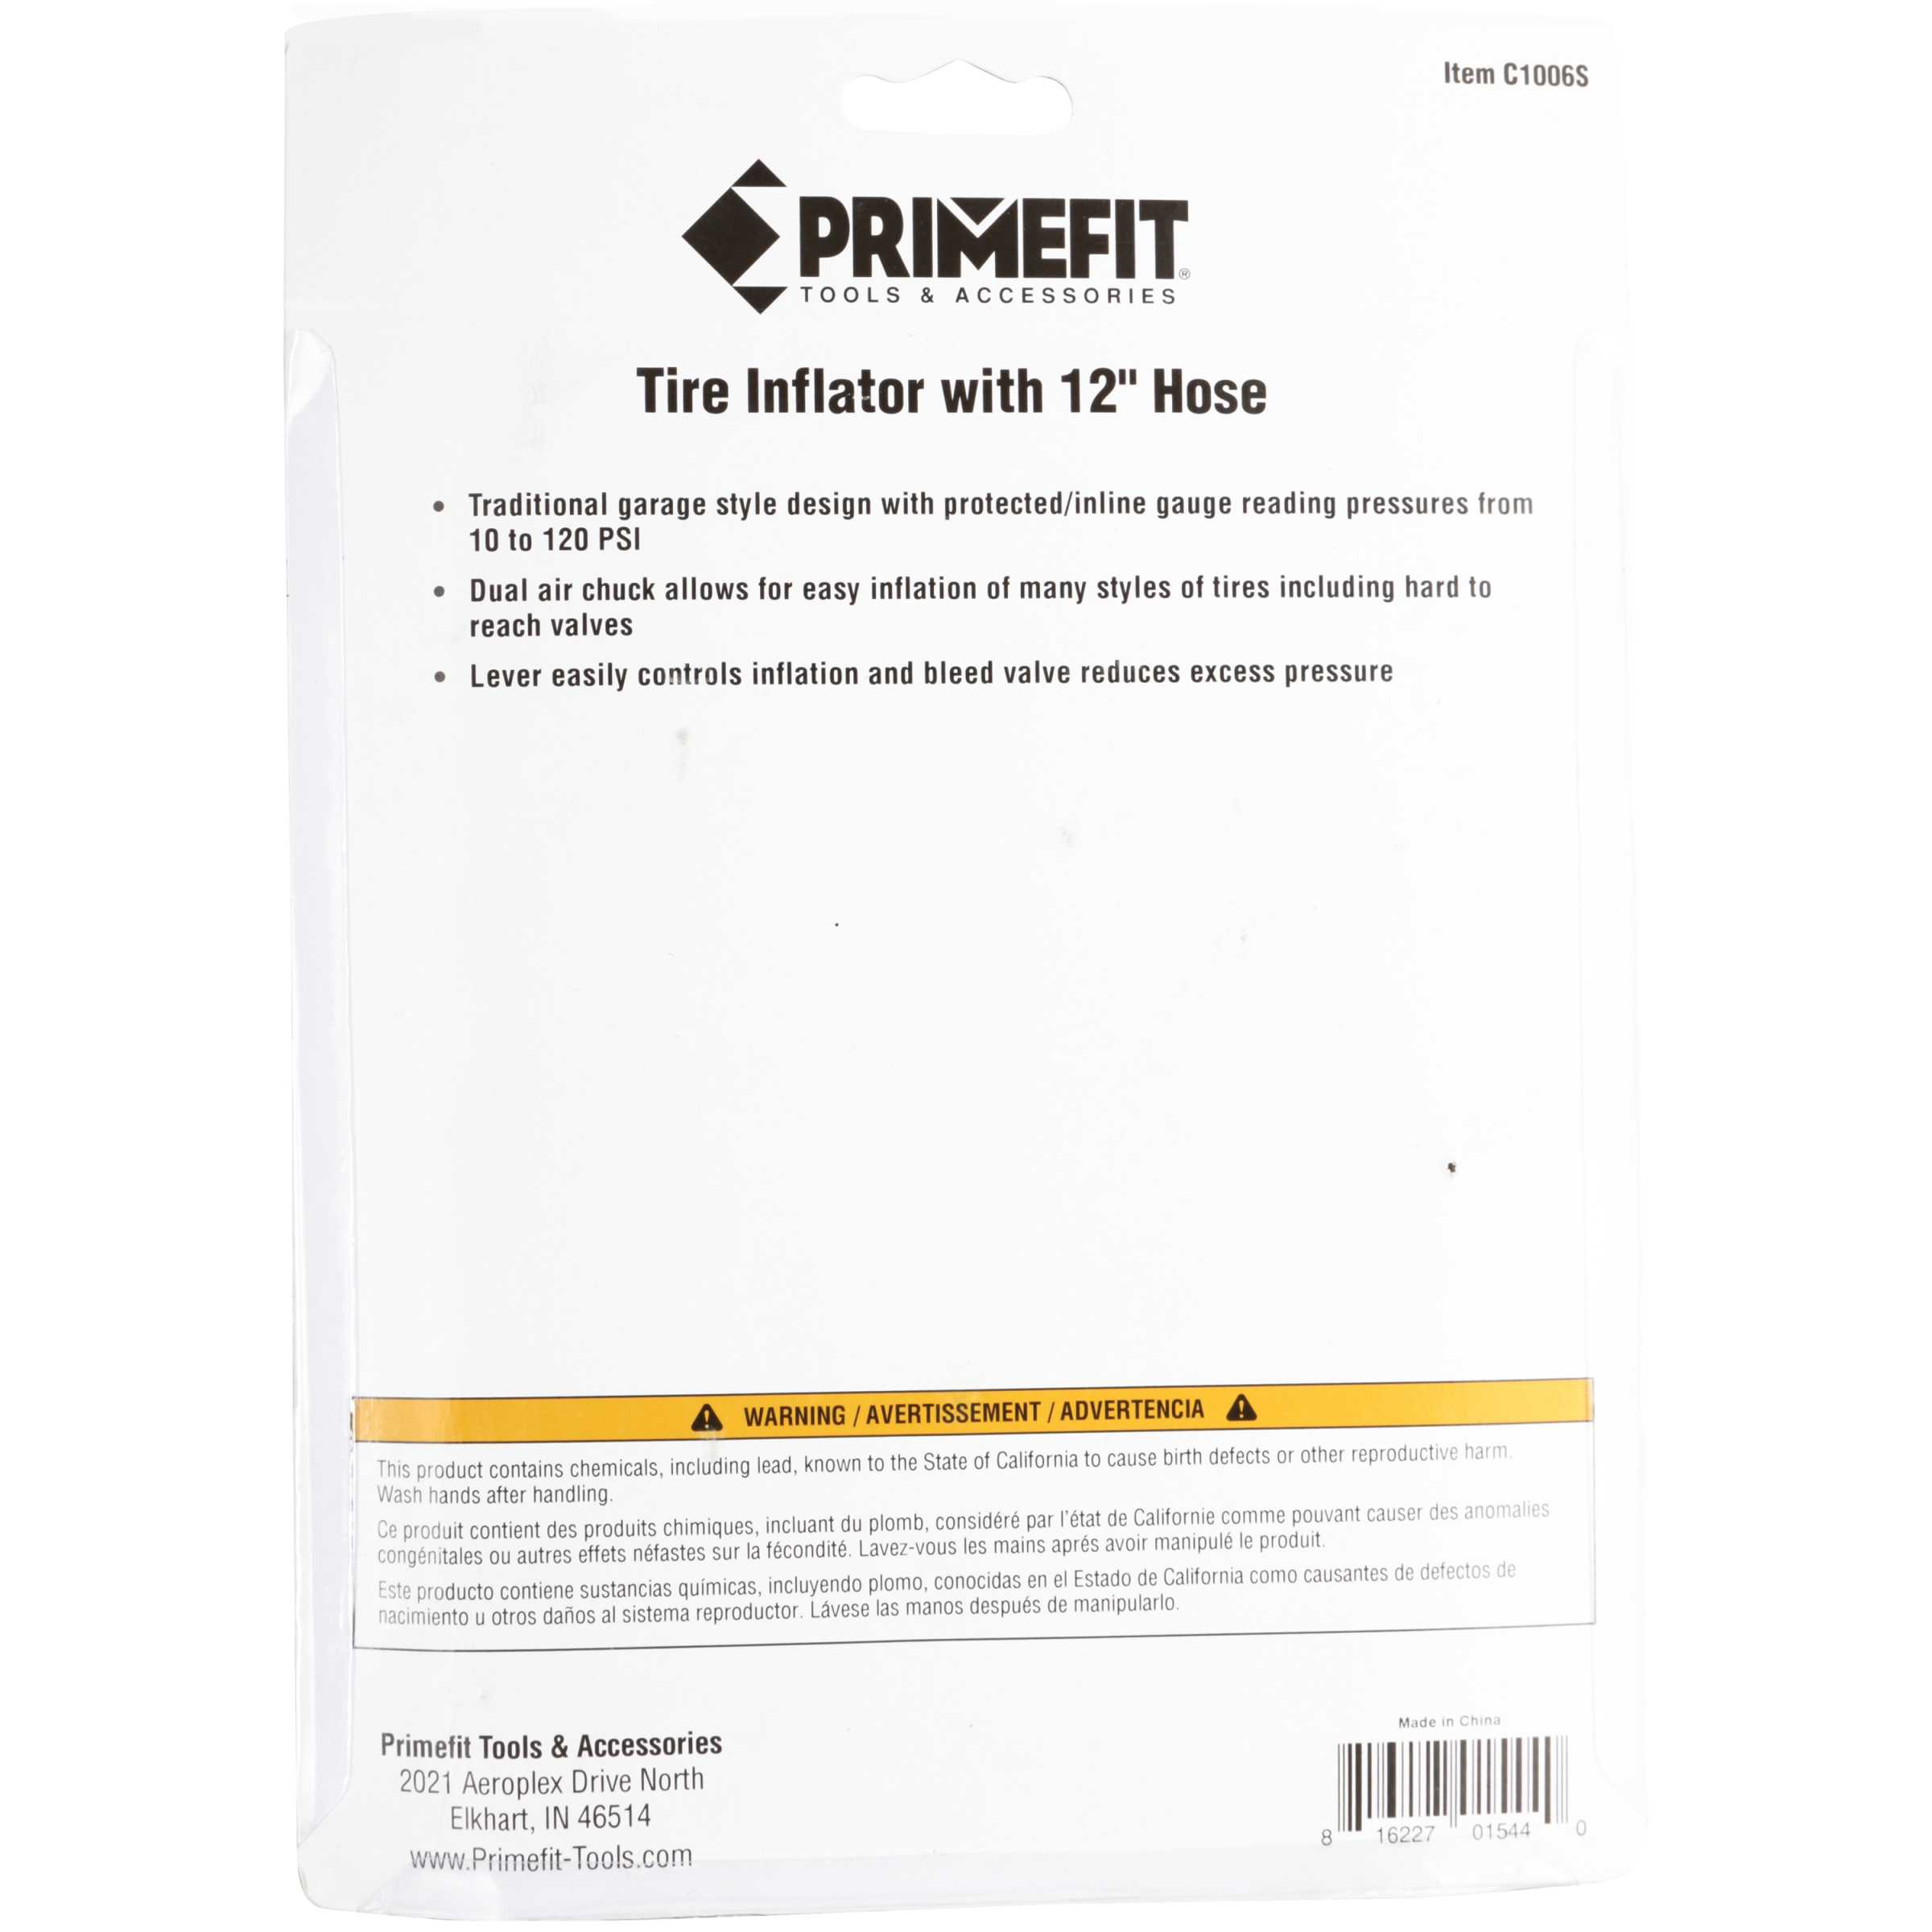 Primefit Tools & Accessories Tire Inflator with 12'' Hose 3 pc Pack